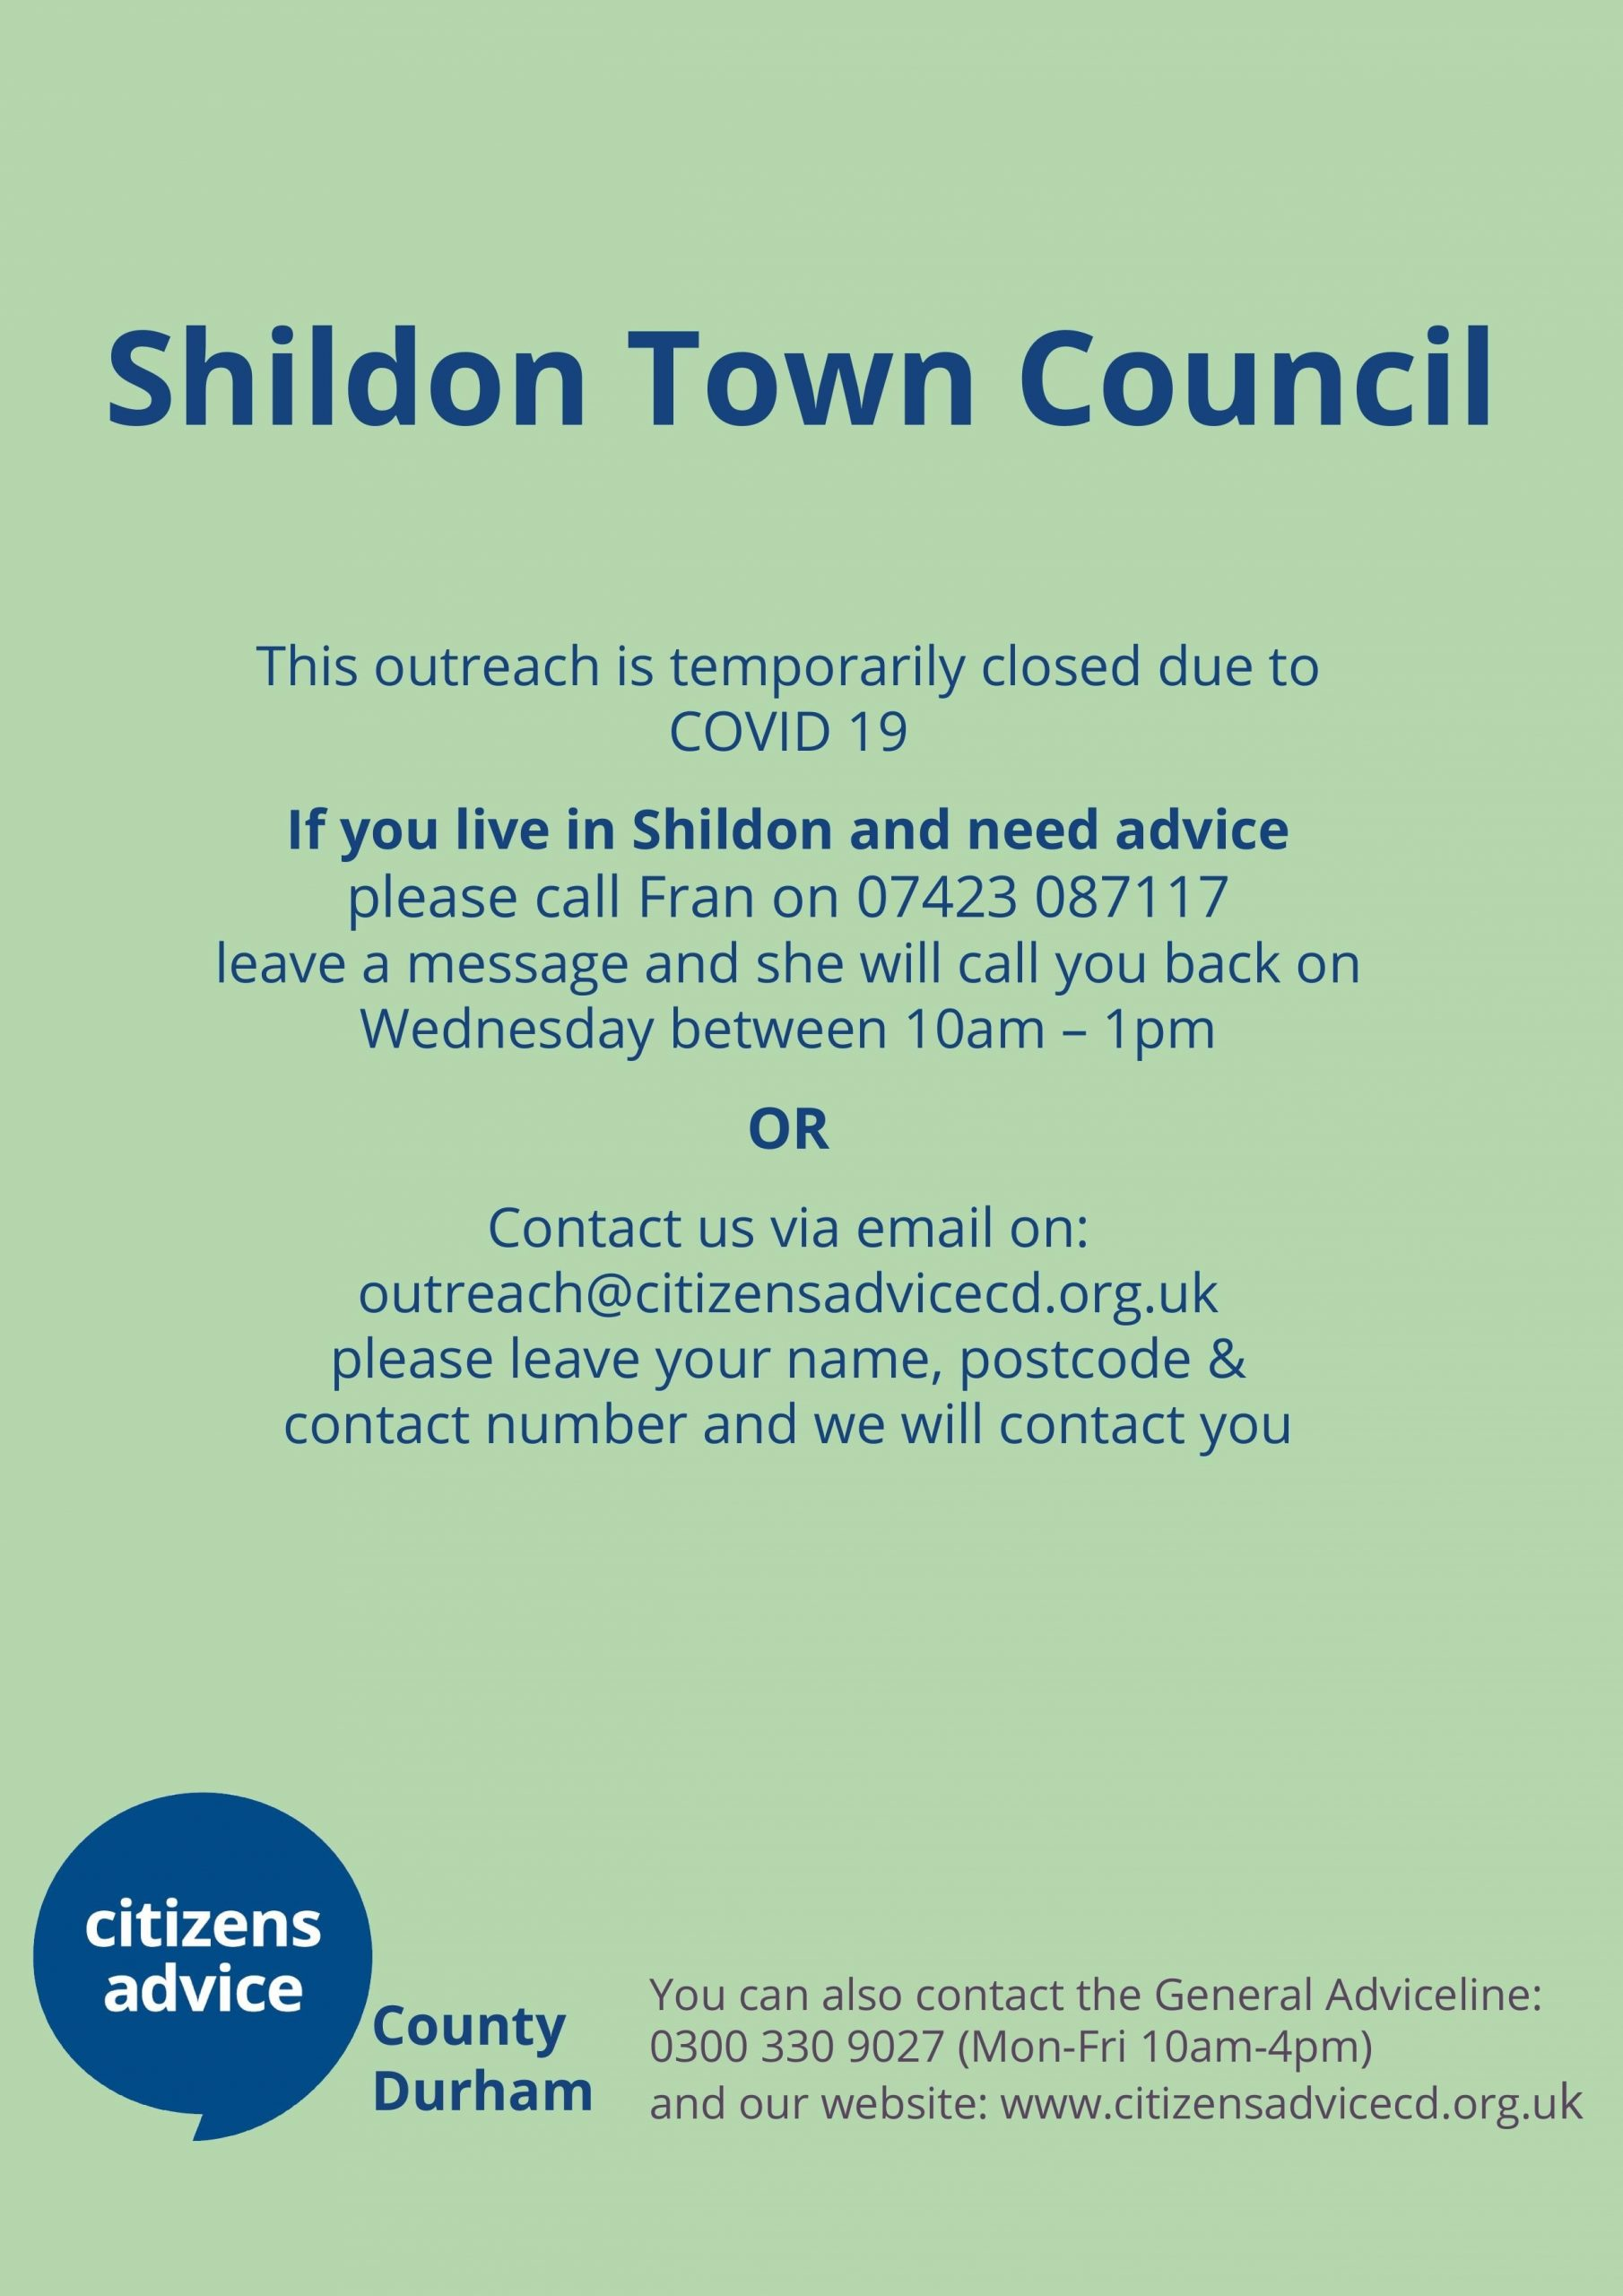 Shildon Town Council- Outreach closed but please call